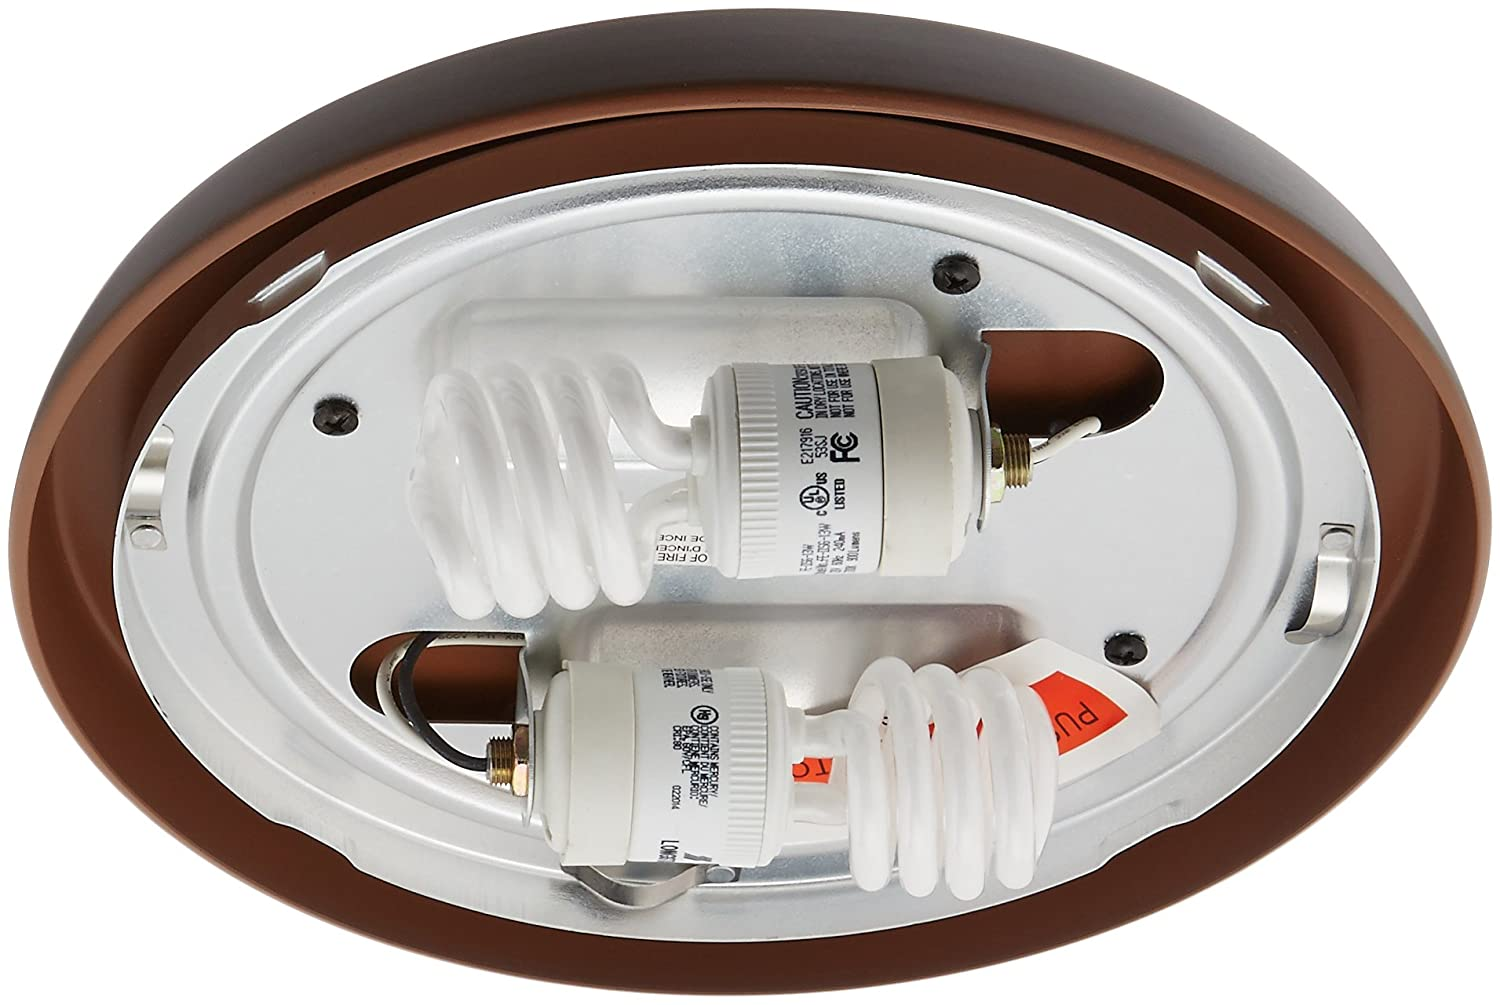 Casablanca 99255 CFL Low Profile Fitter, Brushed Cocoa Casablanca Fan Company